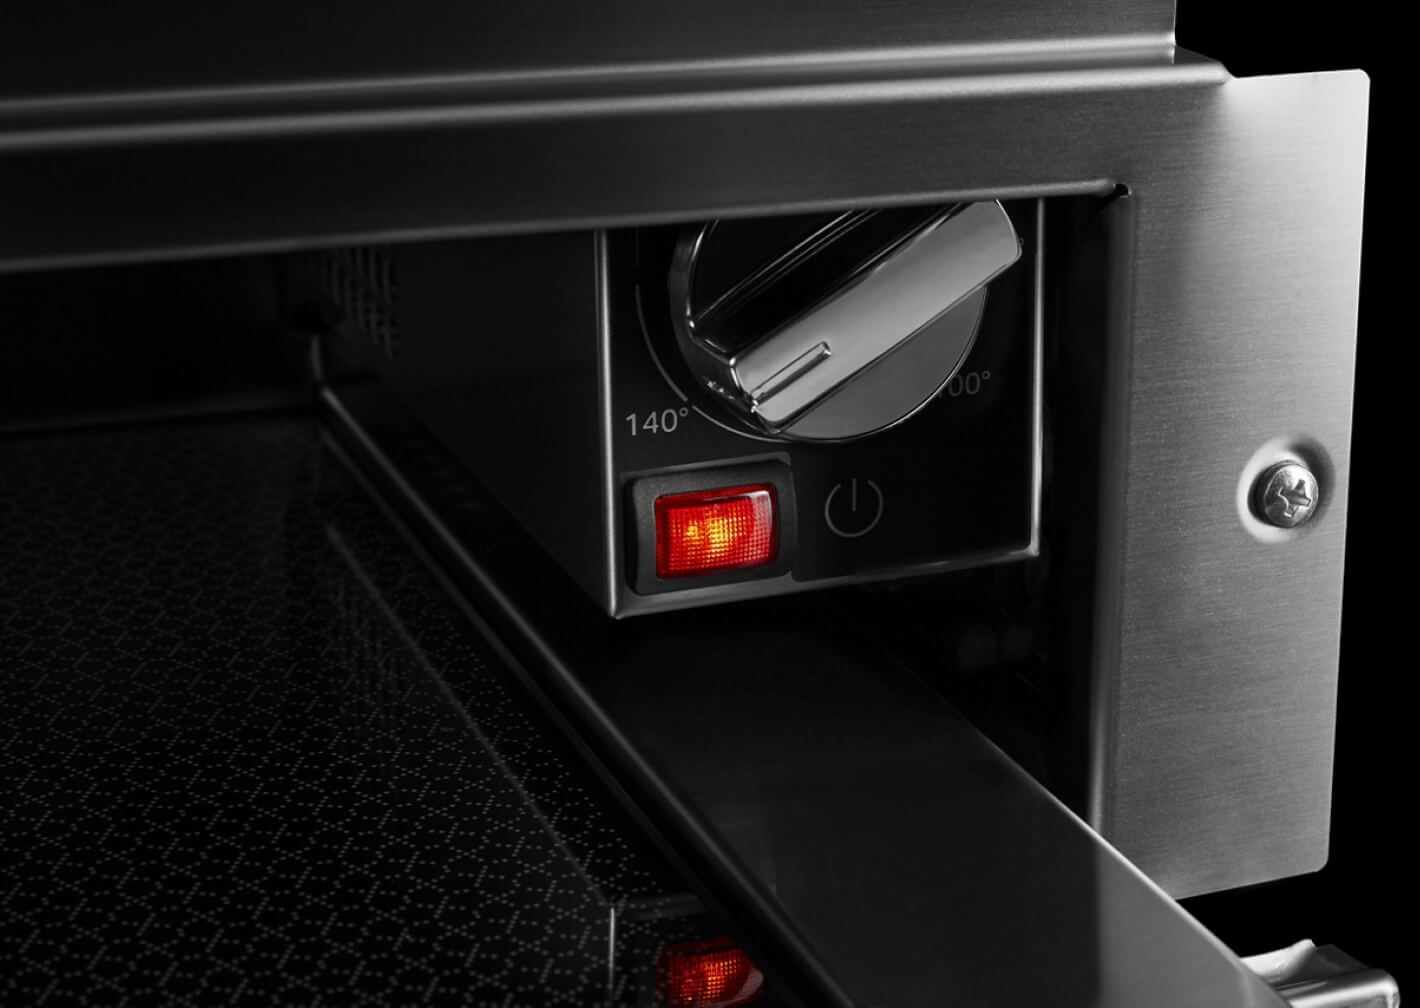 The temperature control knob in a JennAir® warming drawer.